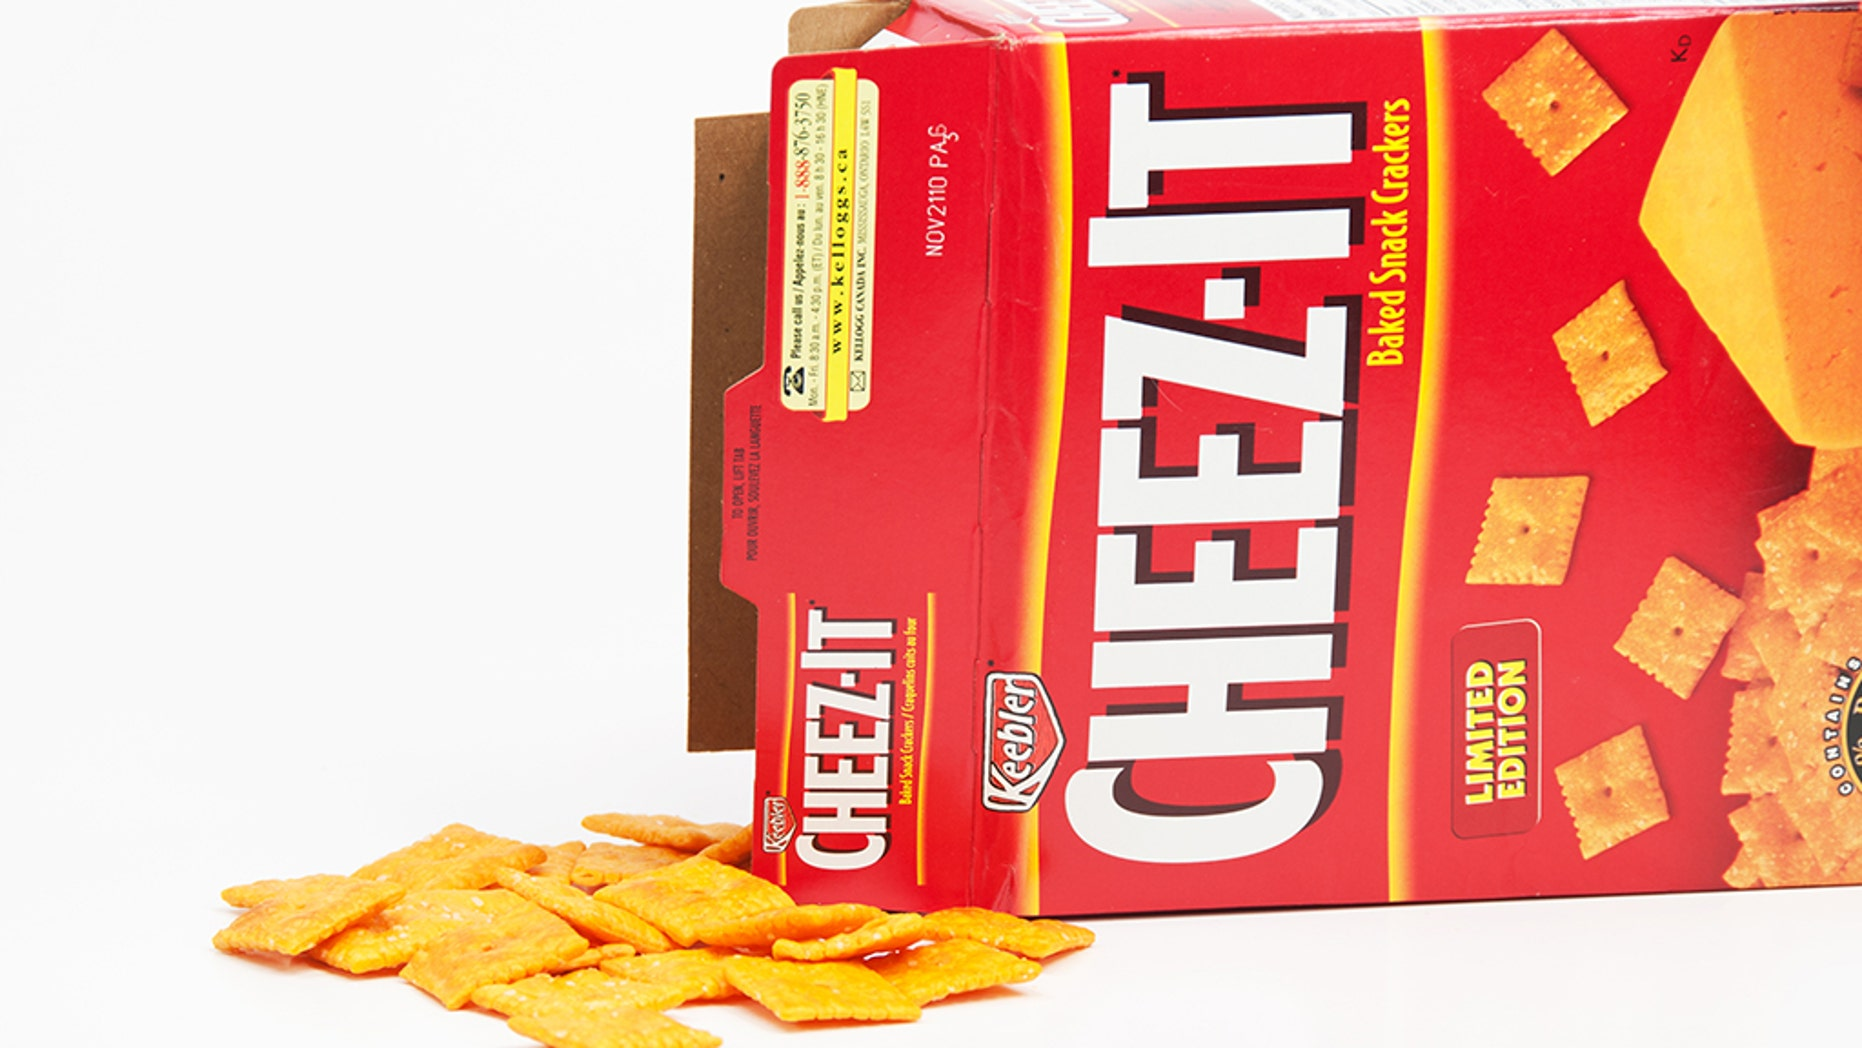 A man in Georgia who reportedly got into a fight with his family over Cheez-Its allegedly lit a house on fire and locked his family inside.